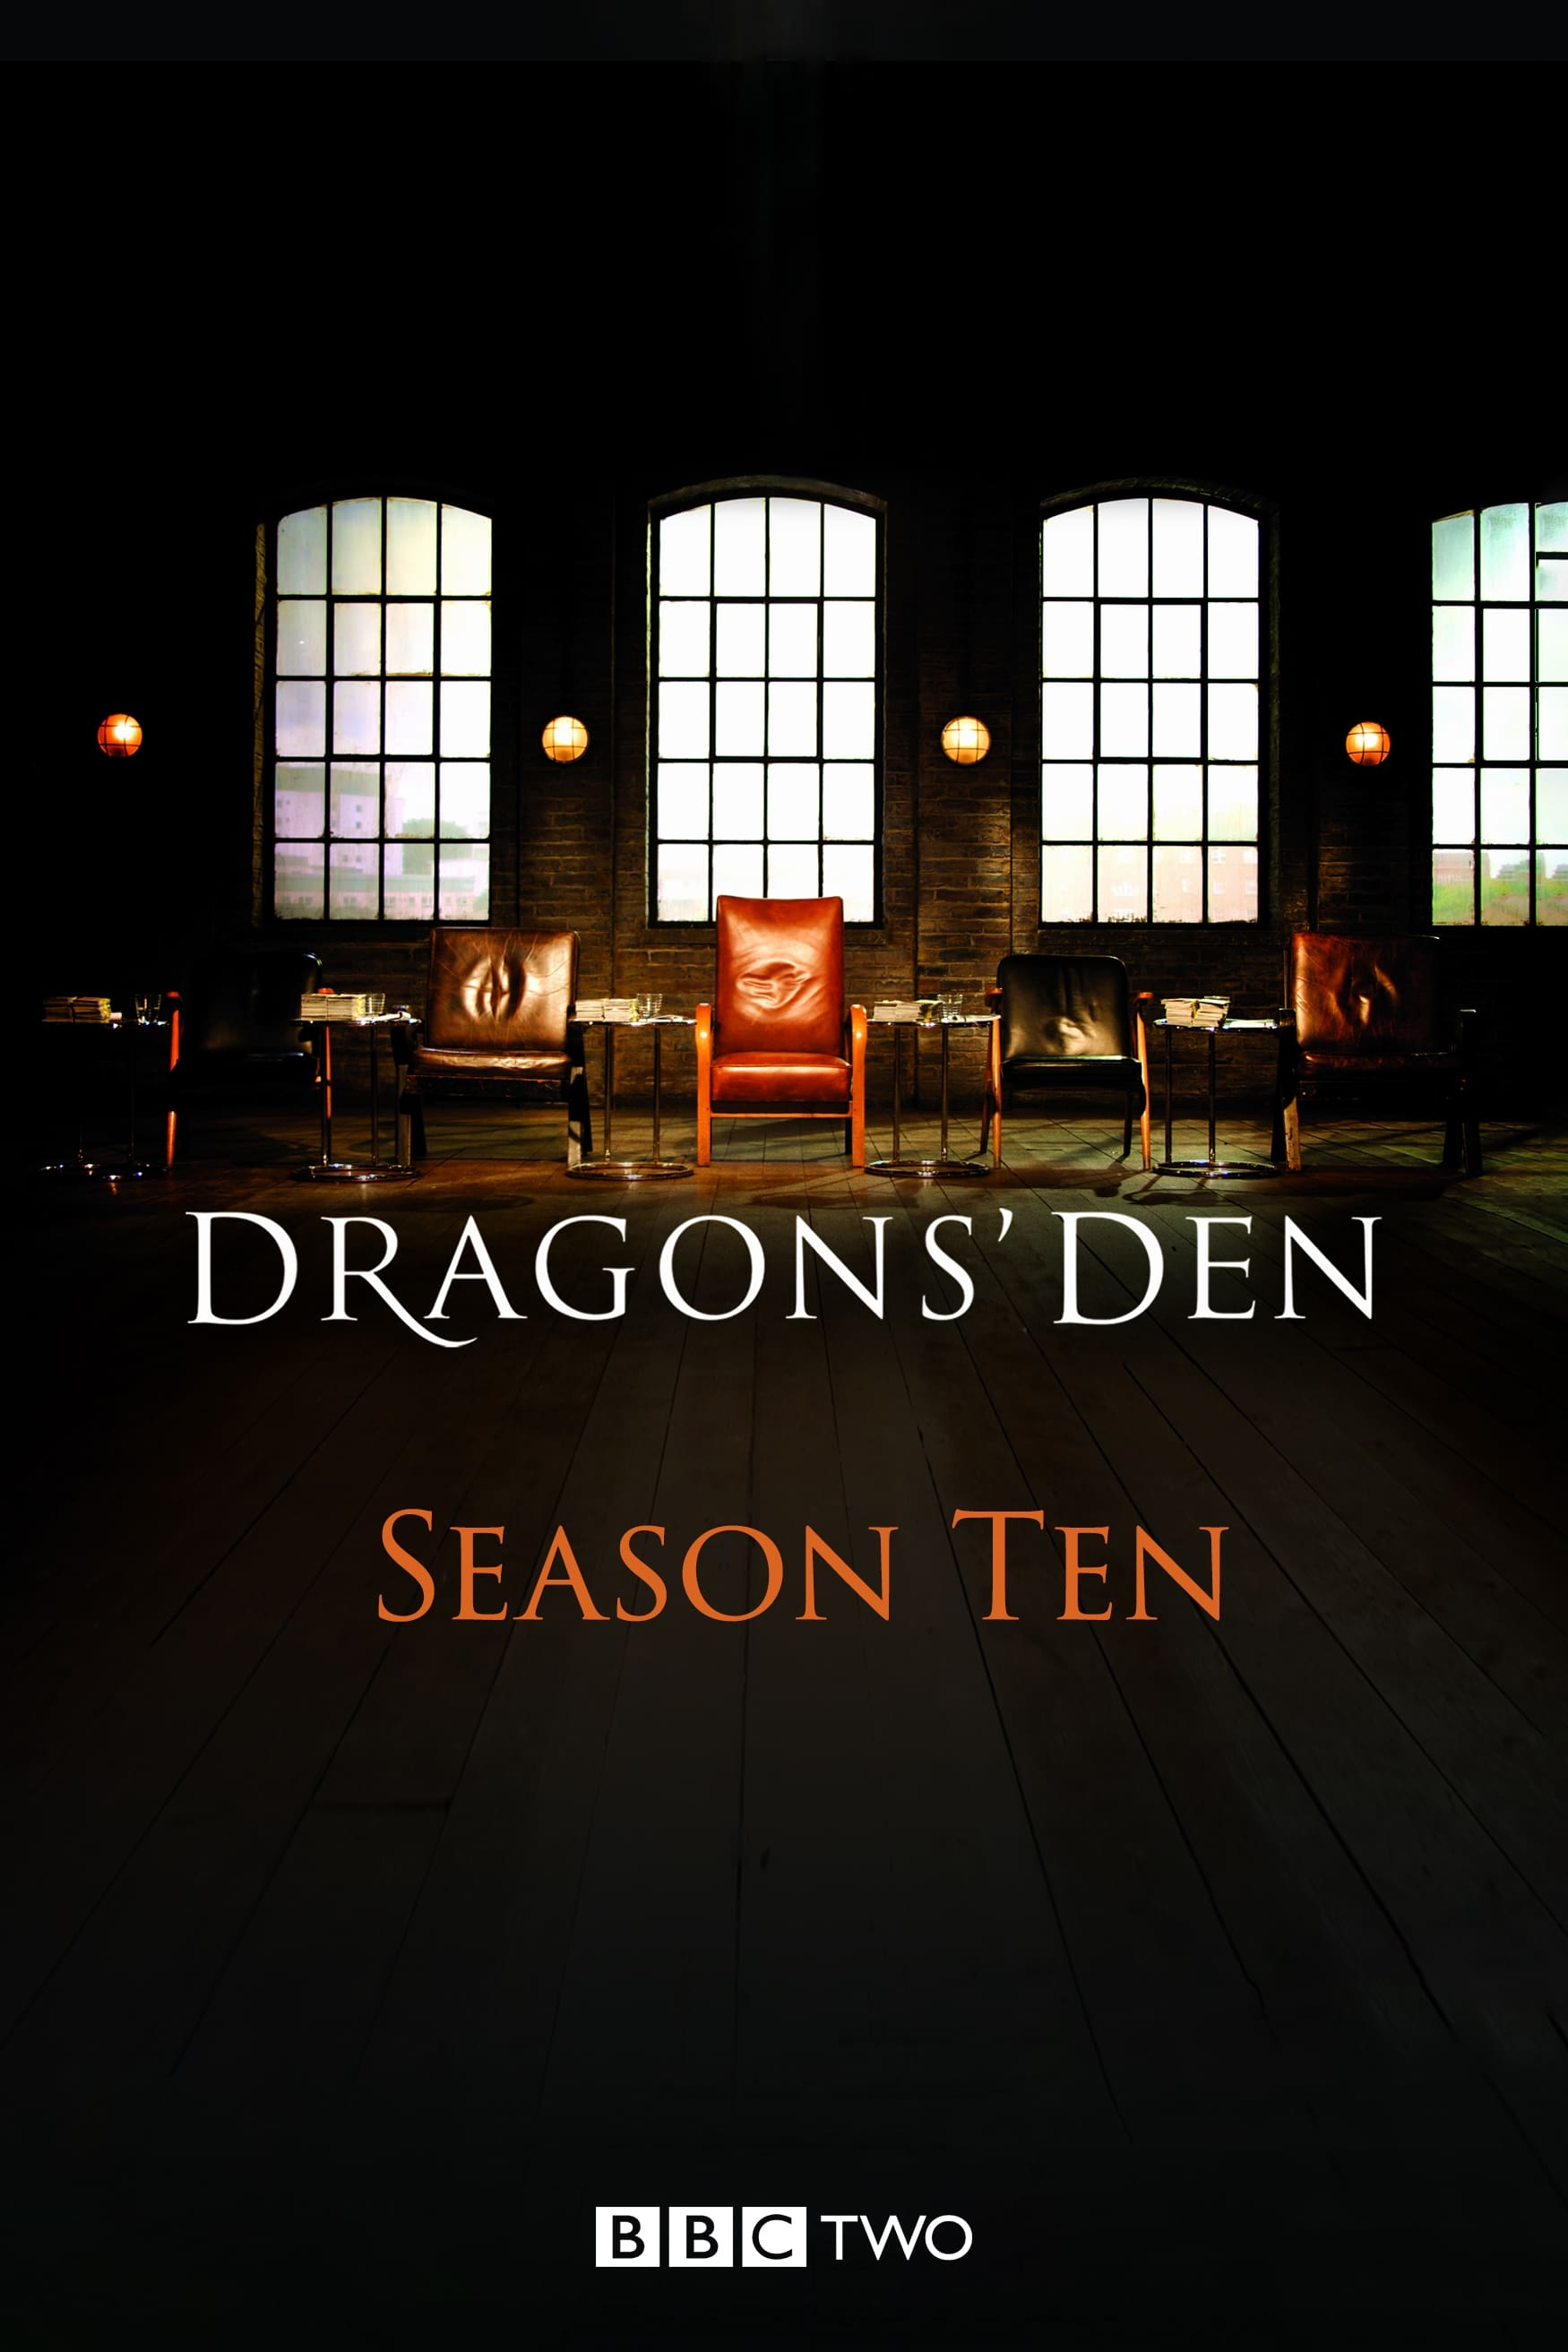 Dragons' Den Season 10